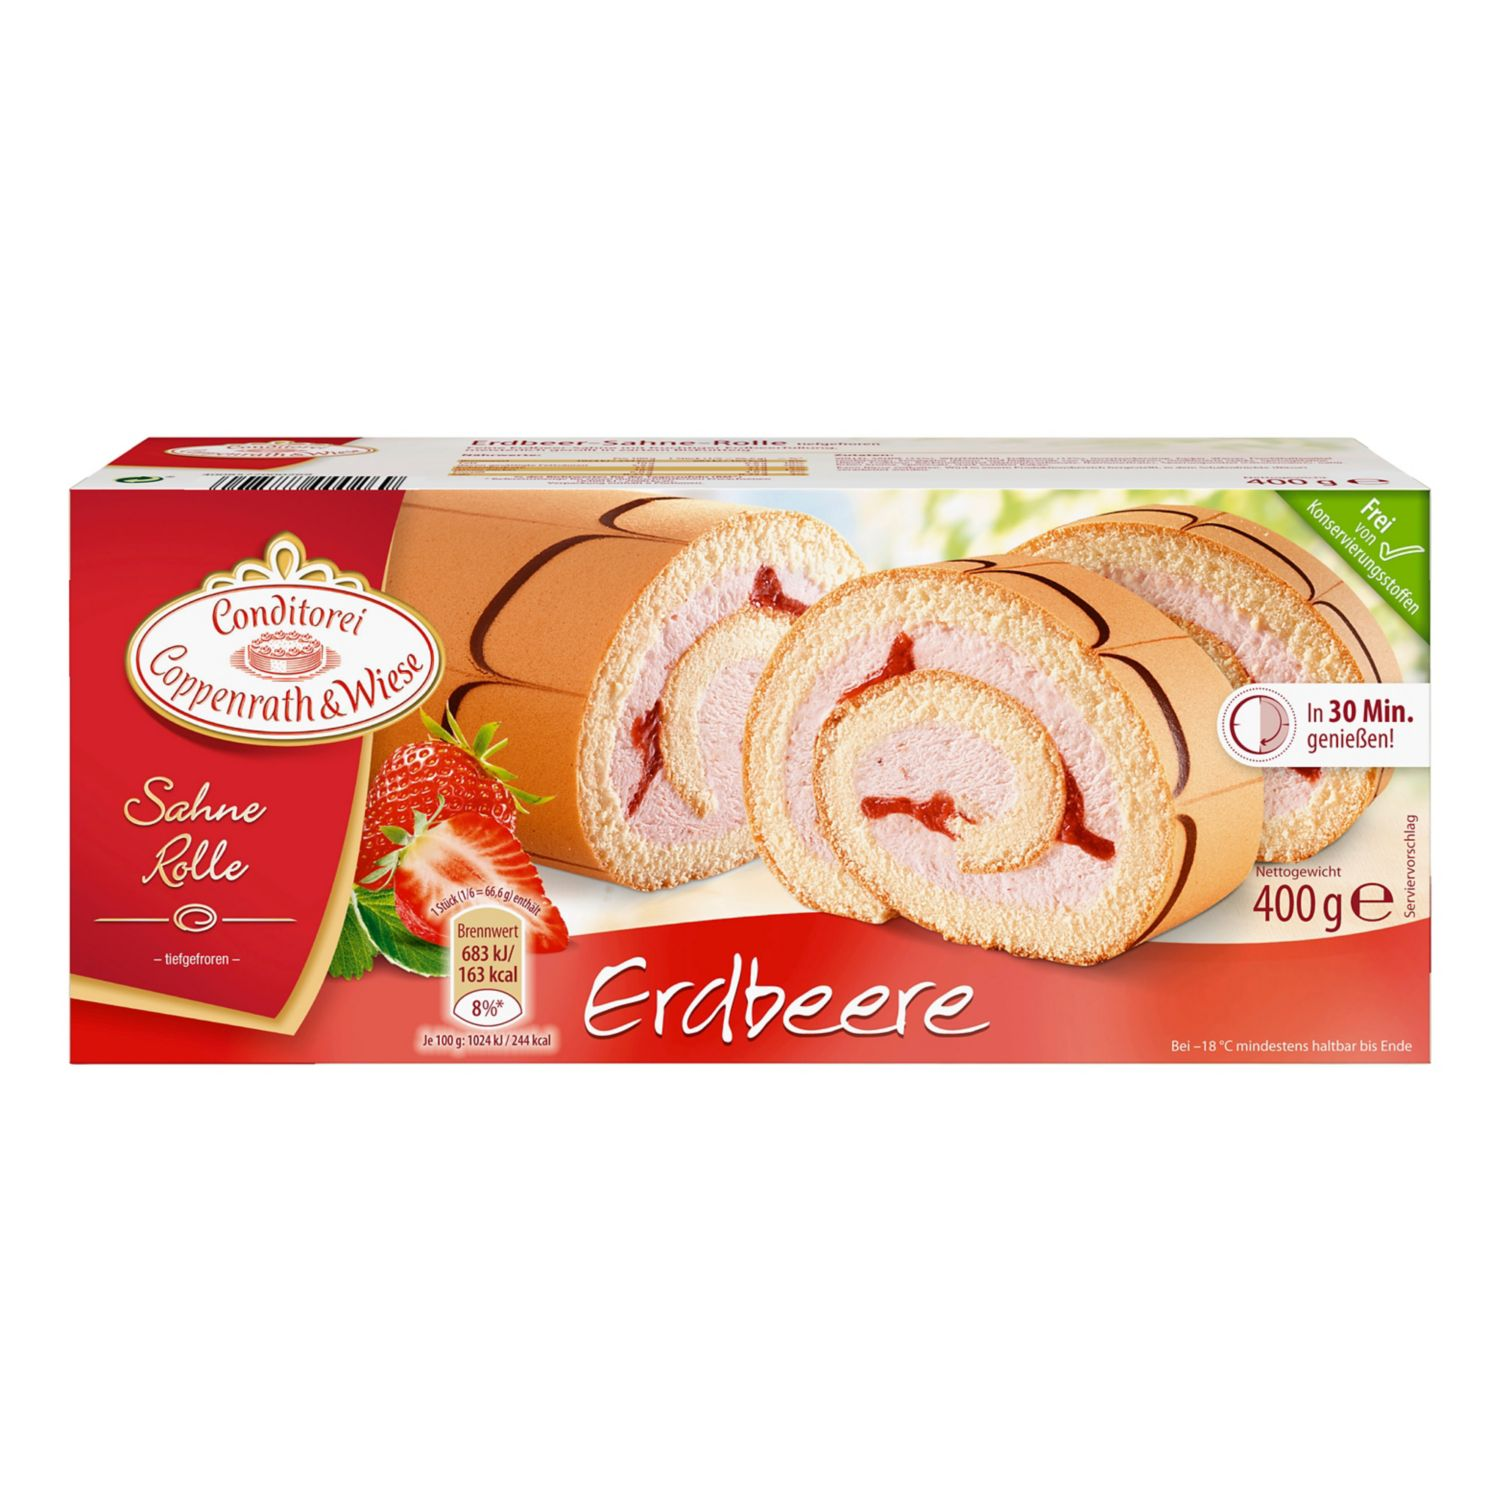 Coppenrath & Wiese Sahne Rolle 400 g*